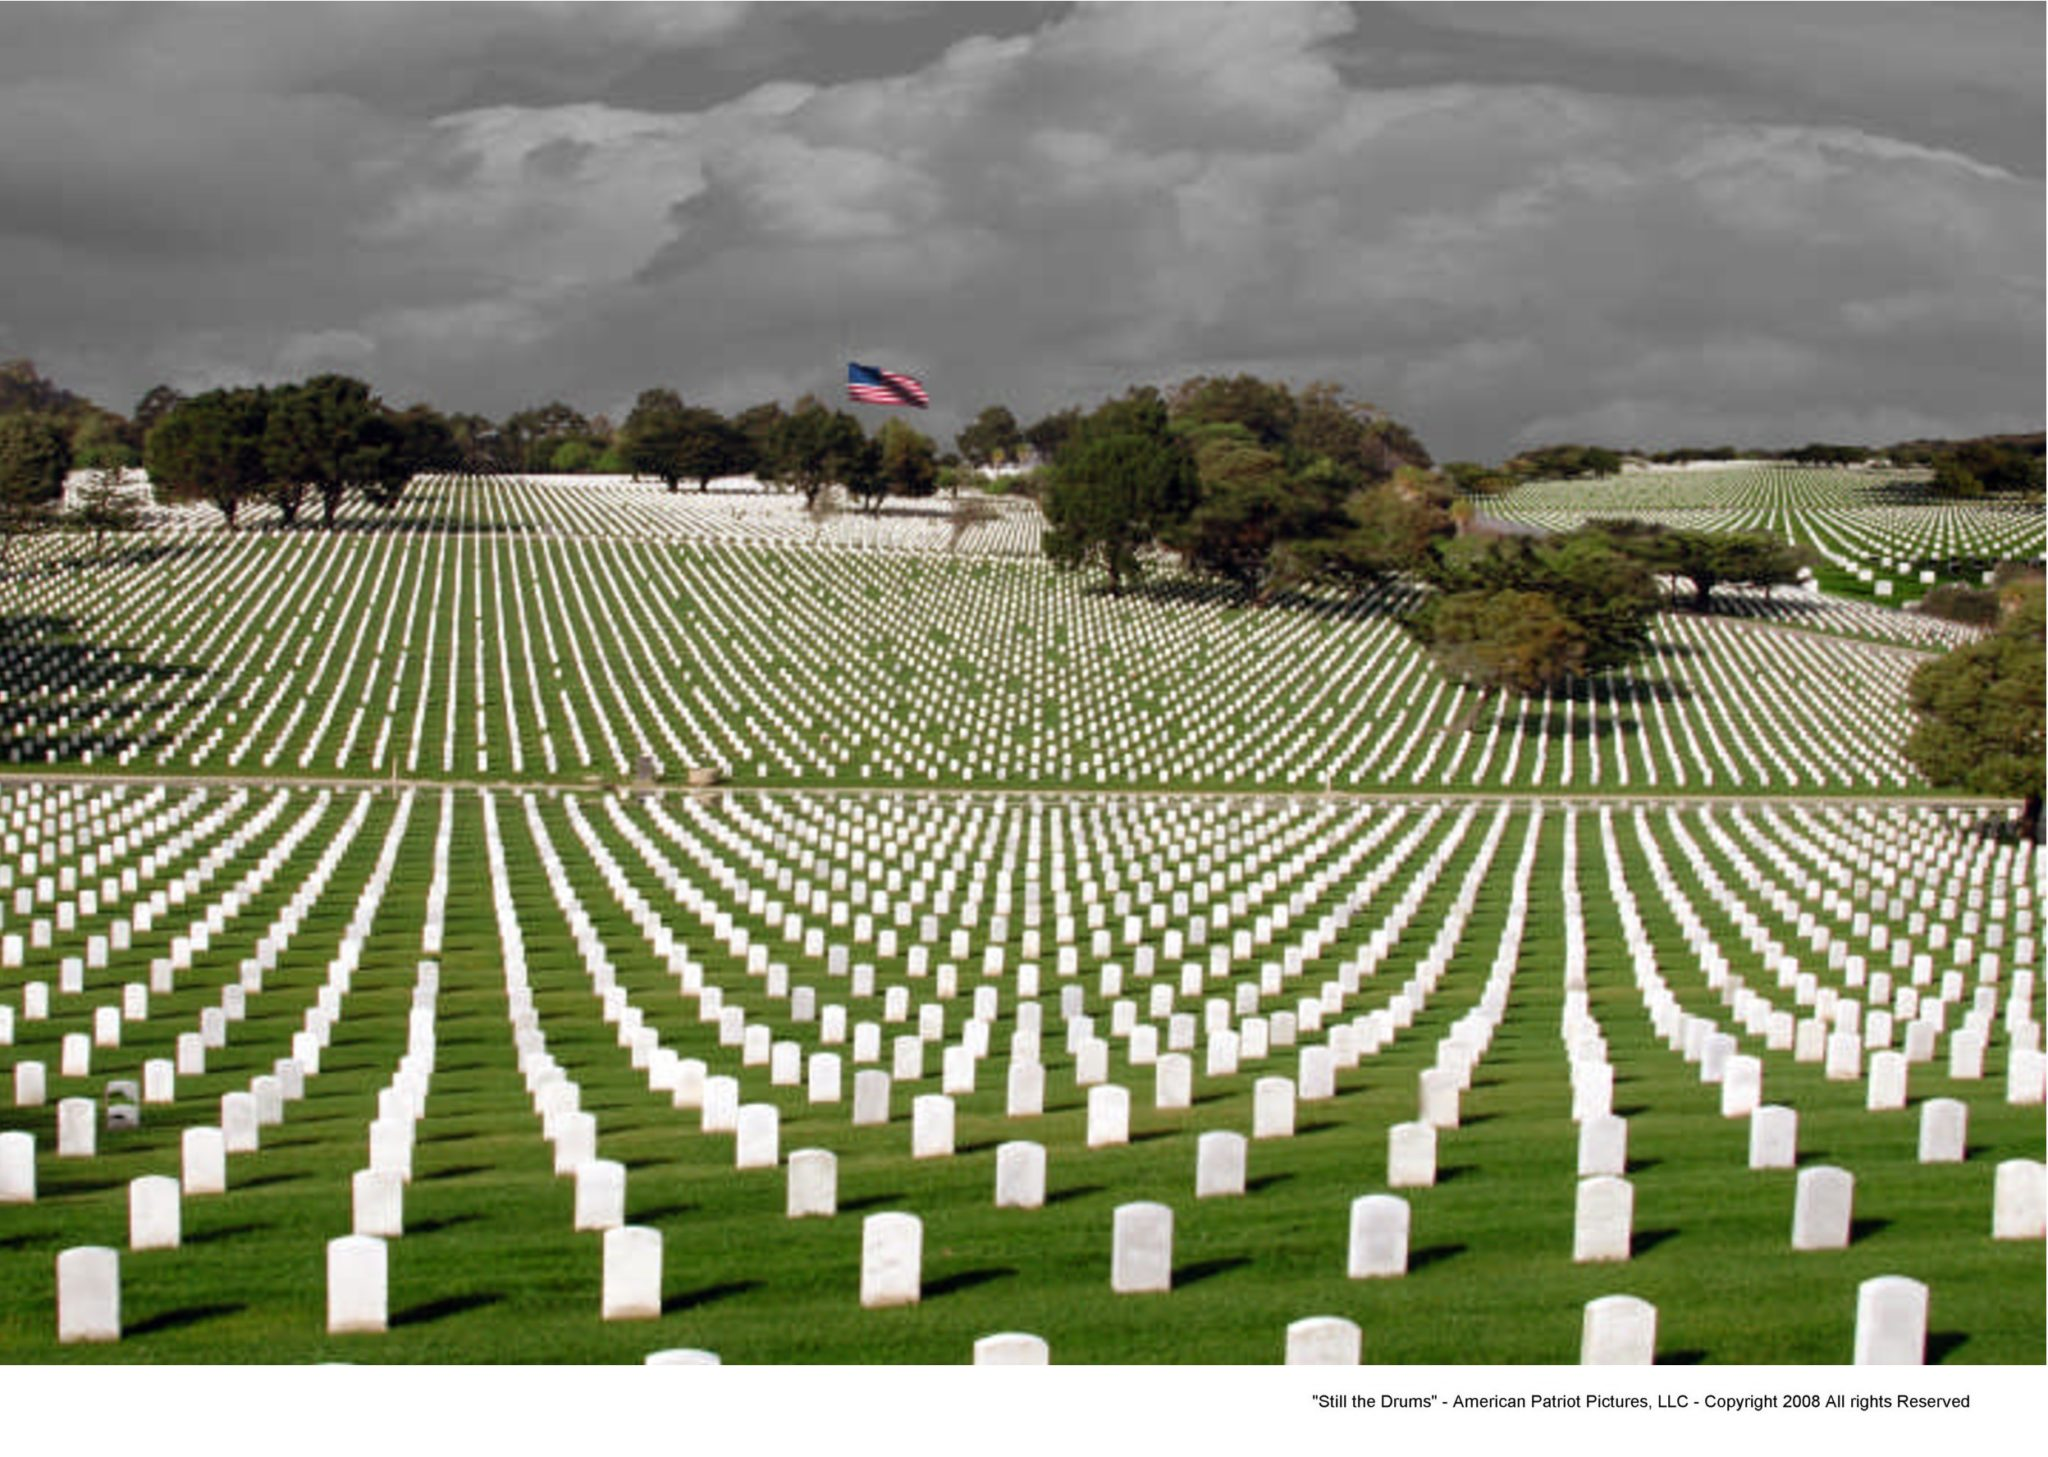 Military Pics for Memorial Day